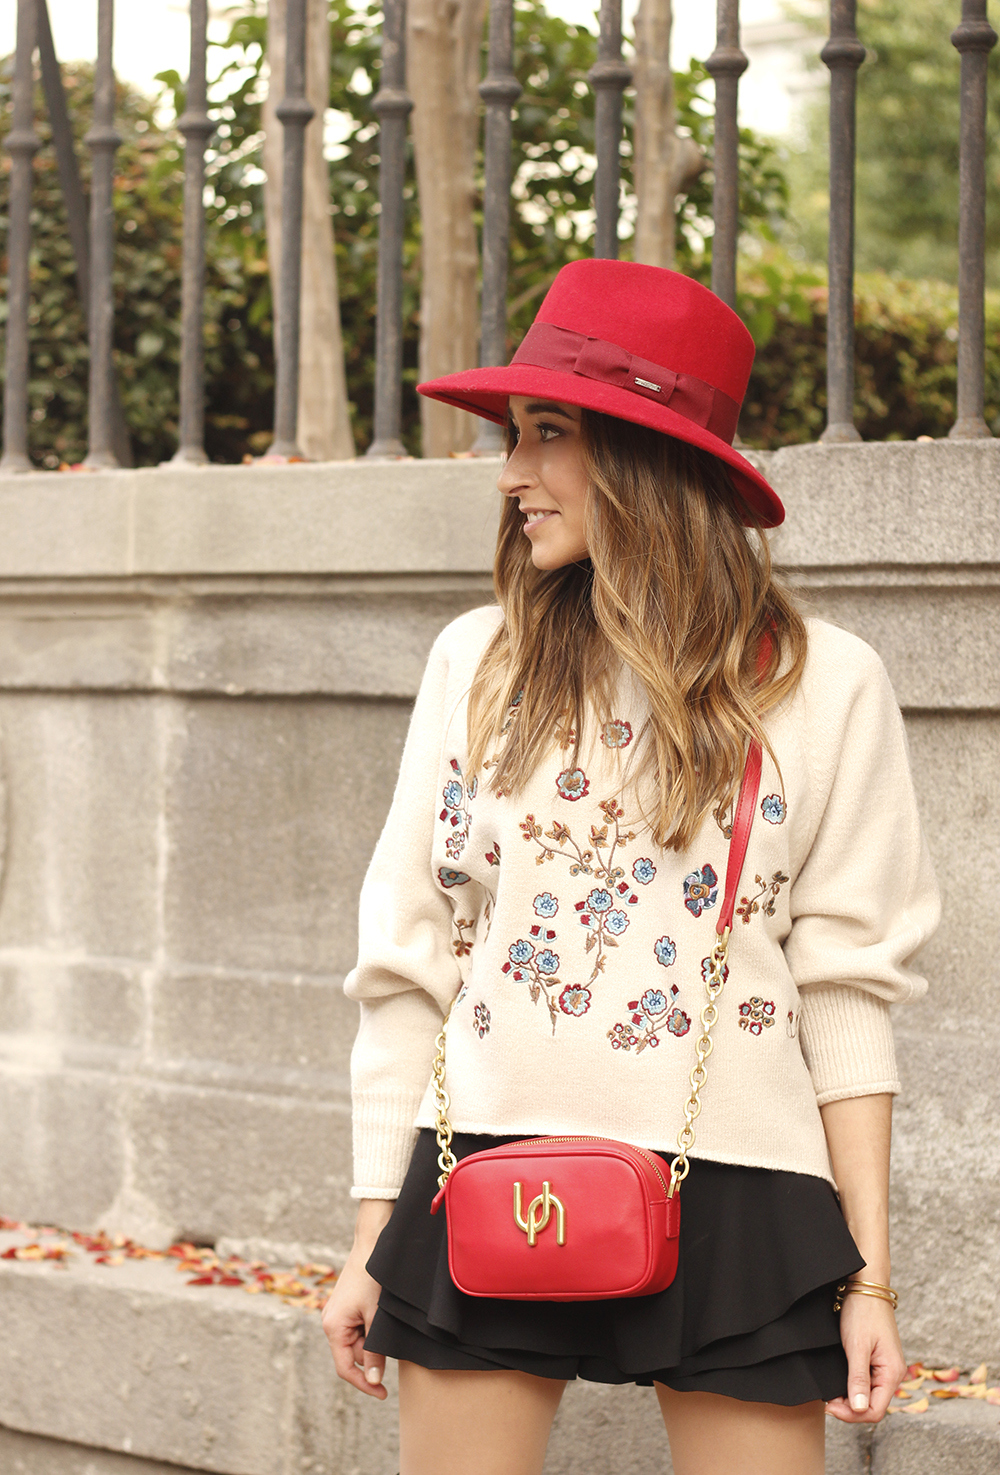 beige jersey with embroidered flowers over the knee black boots red hat street style fashion inspiration outfit11